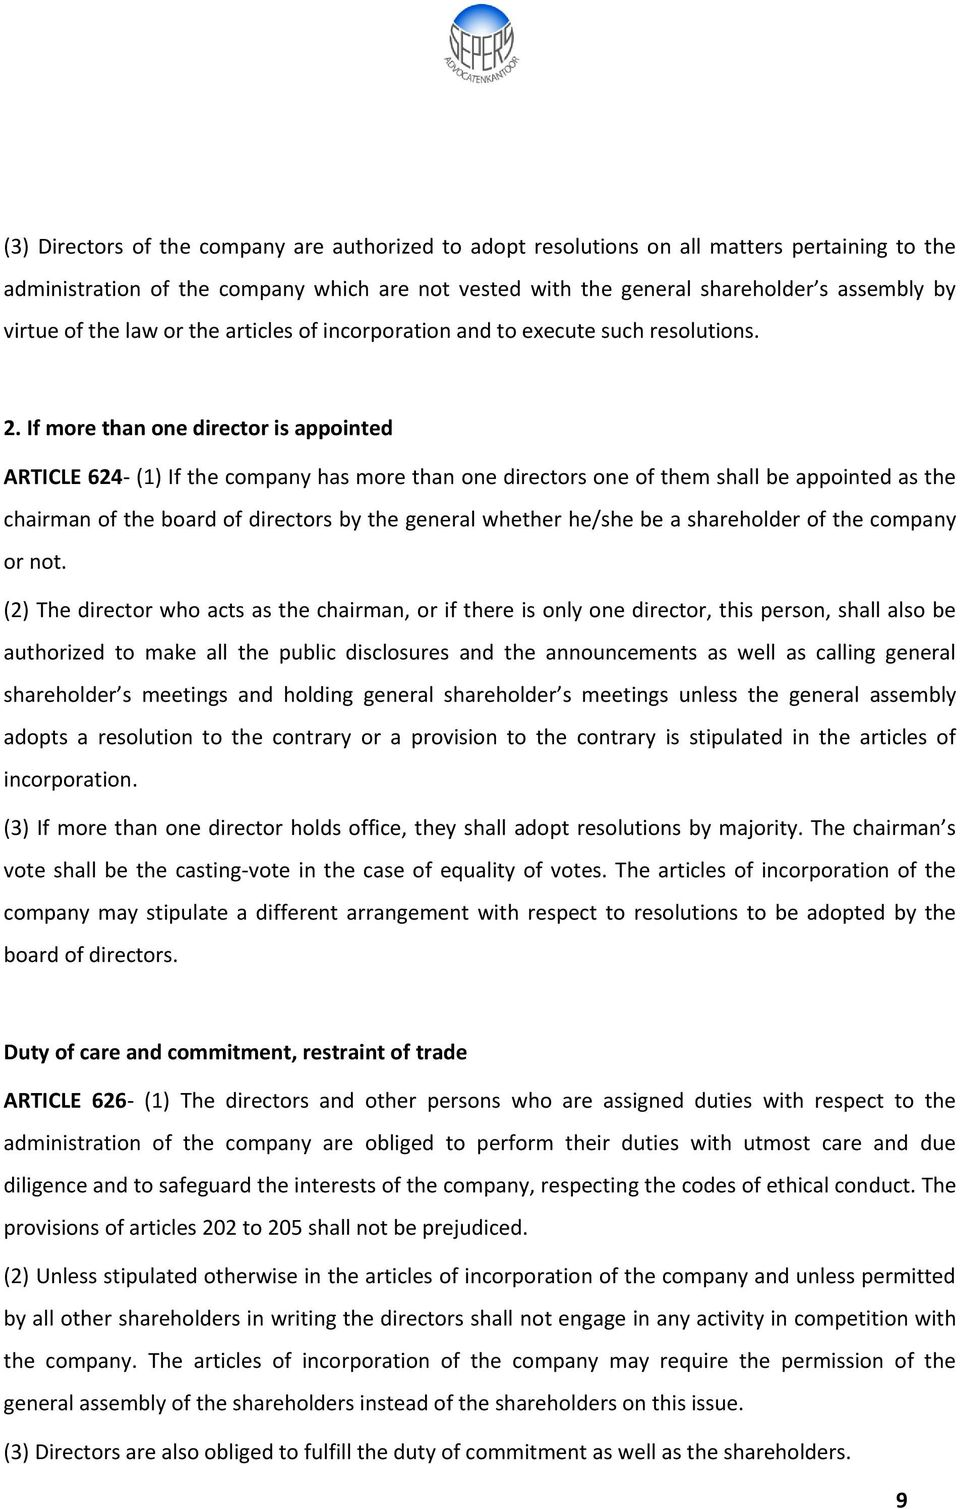 If more than one director is appointed ARTICLE 624- (1) If the company has more than one directors one of them shall be appointed as the chairman of the board of directors by the general whether